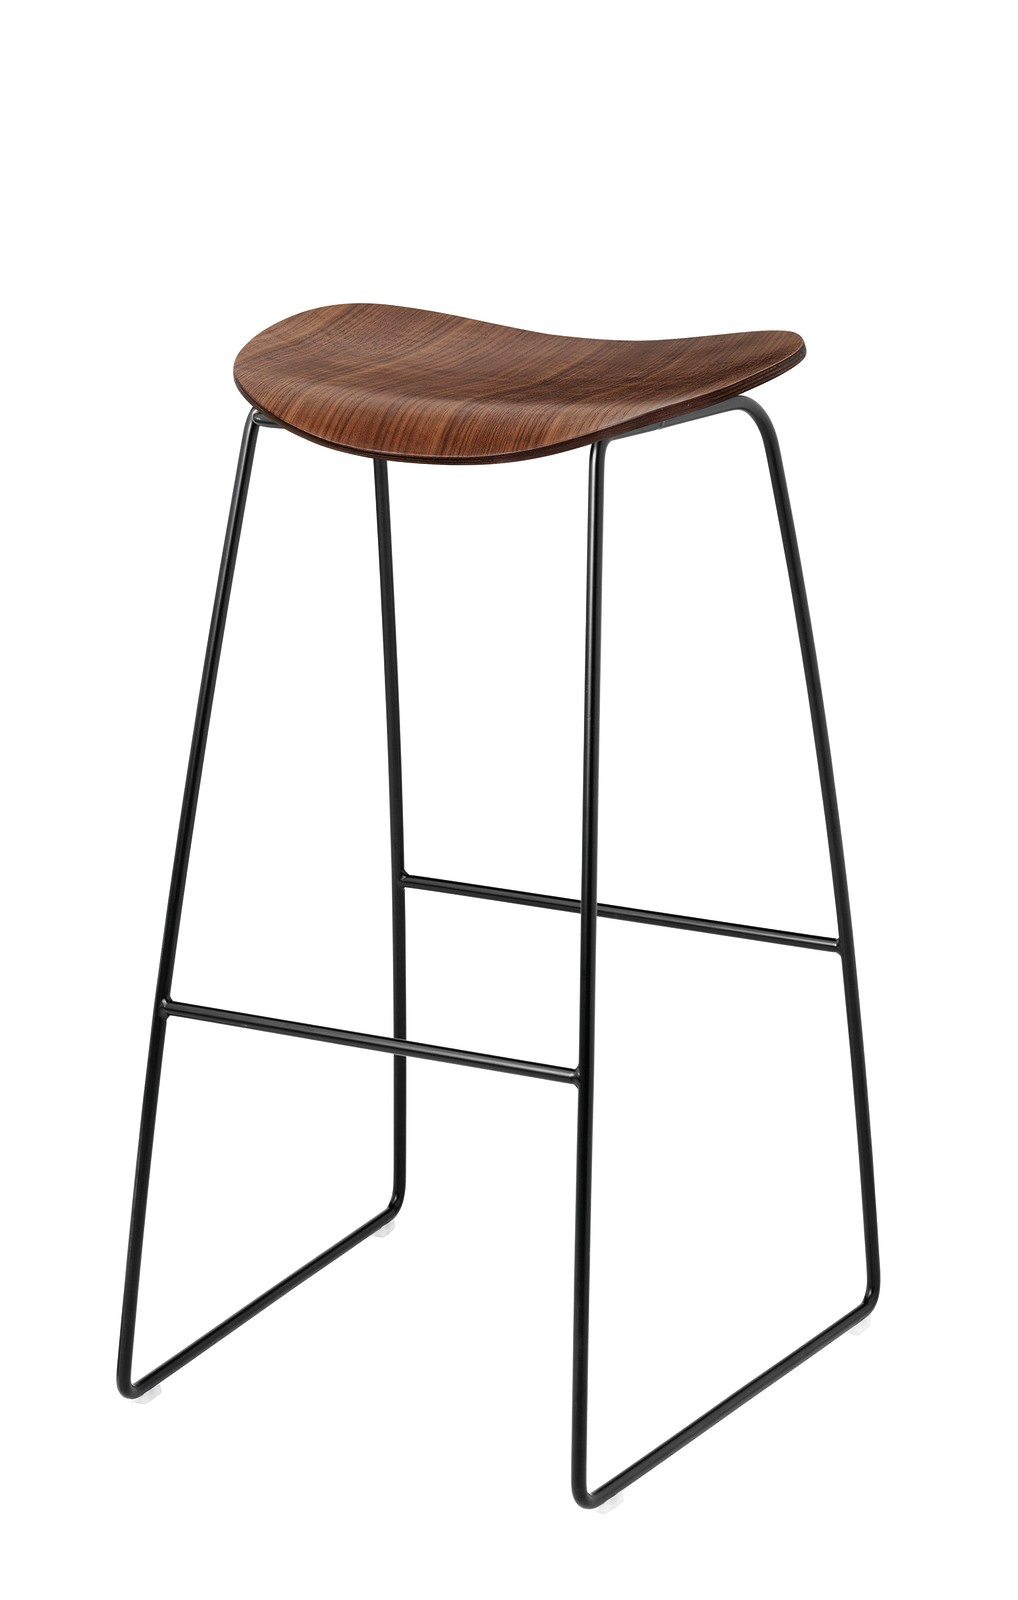 Gubi 2D Bar Stool Sledge Base - Unupholstered Gubi Wood American Walnut, Gubi Metal Black